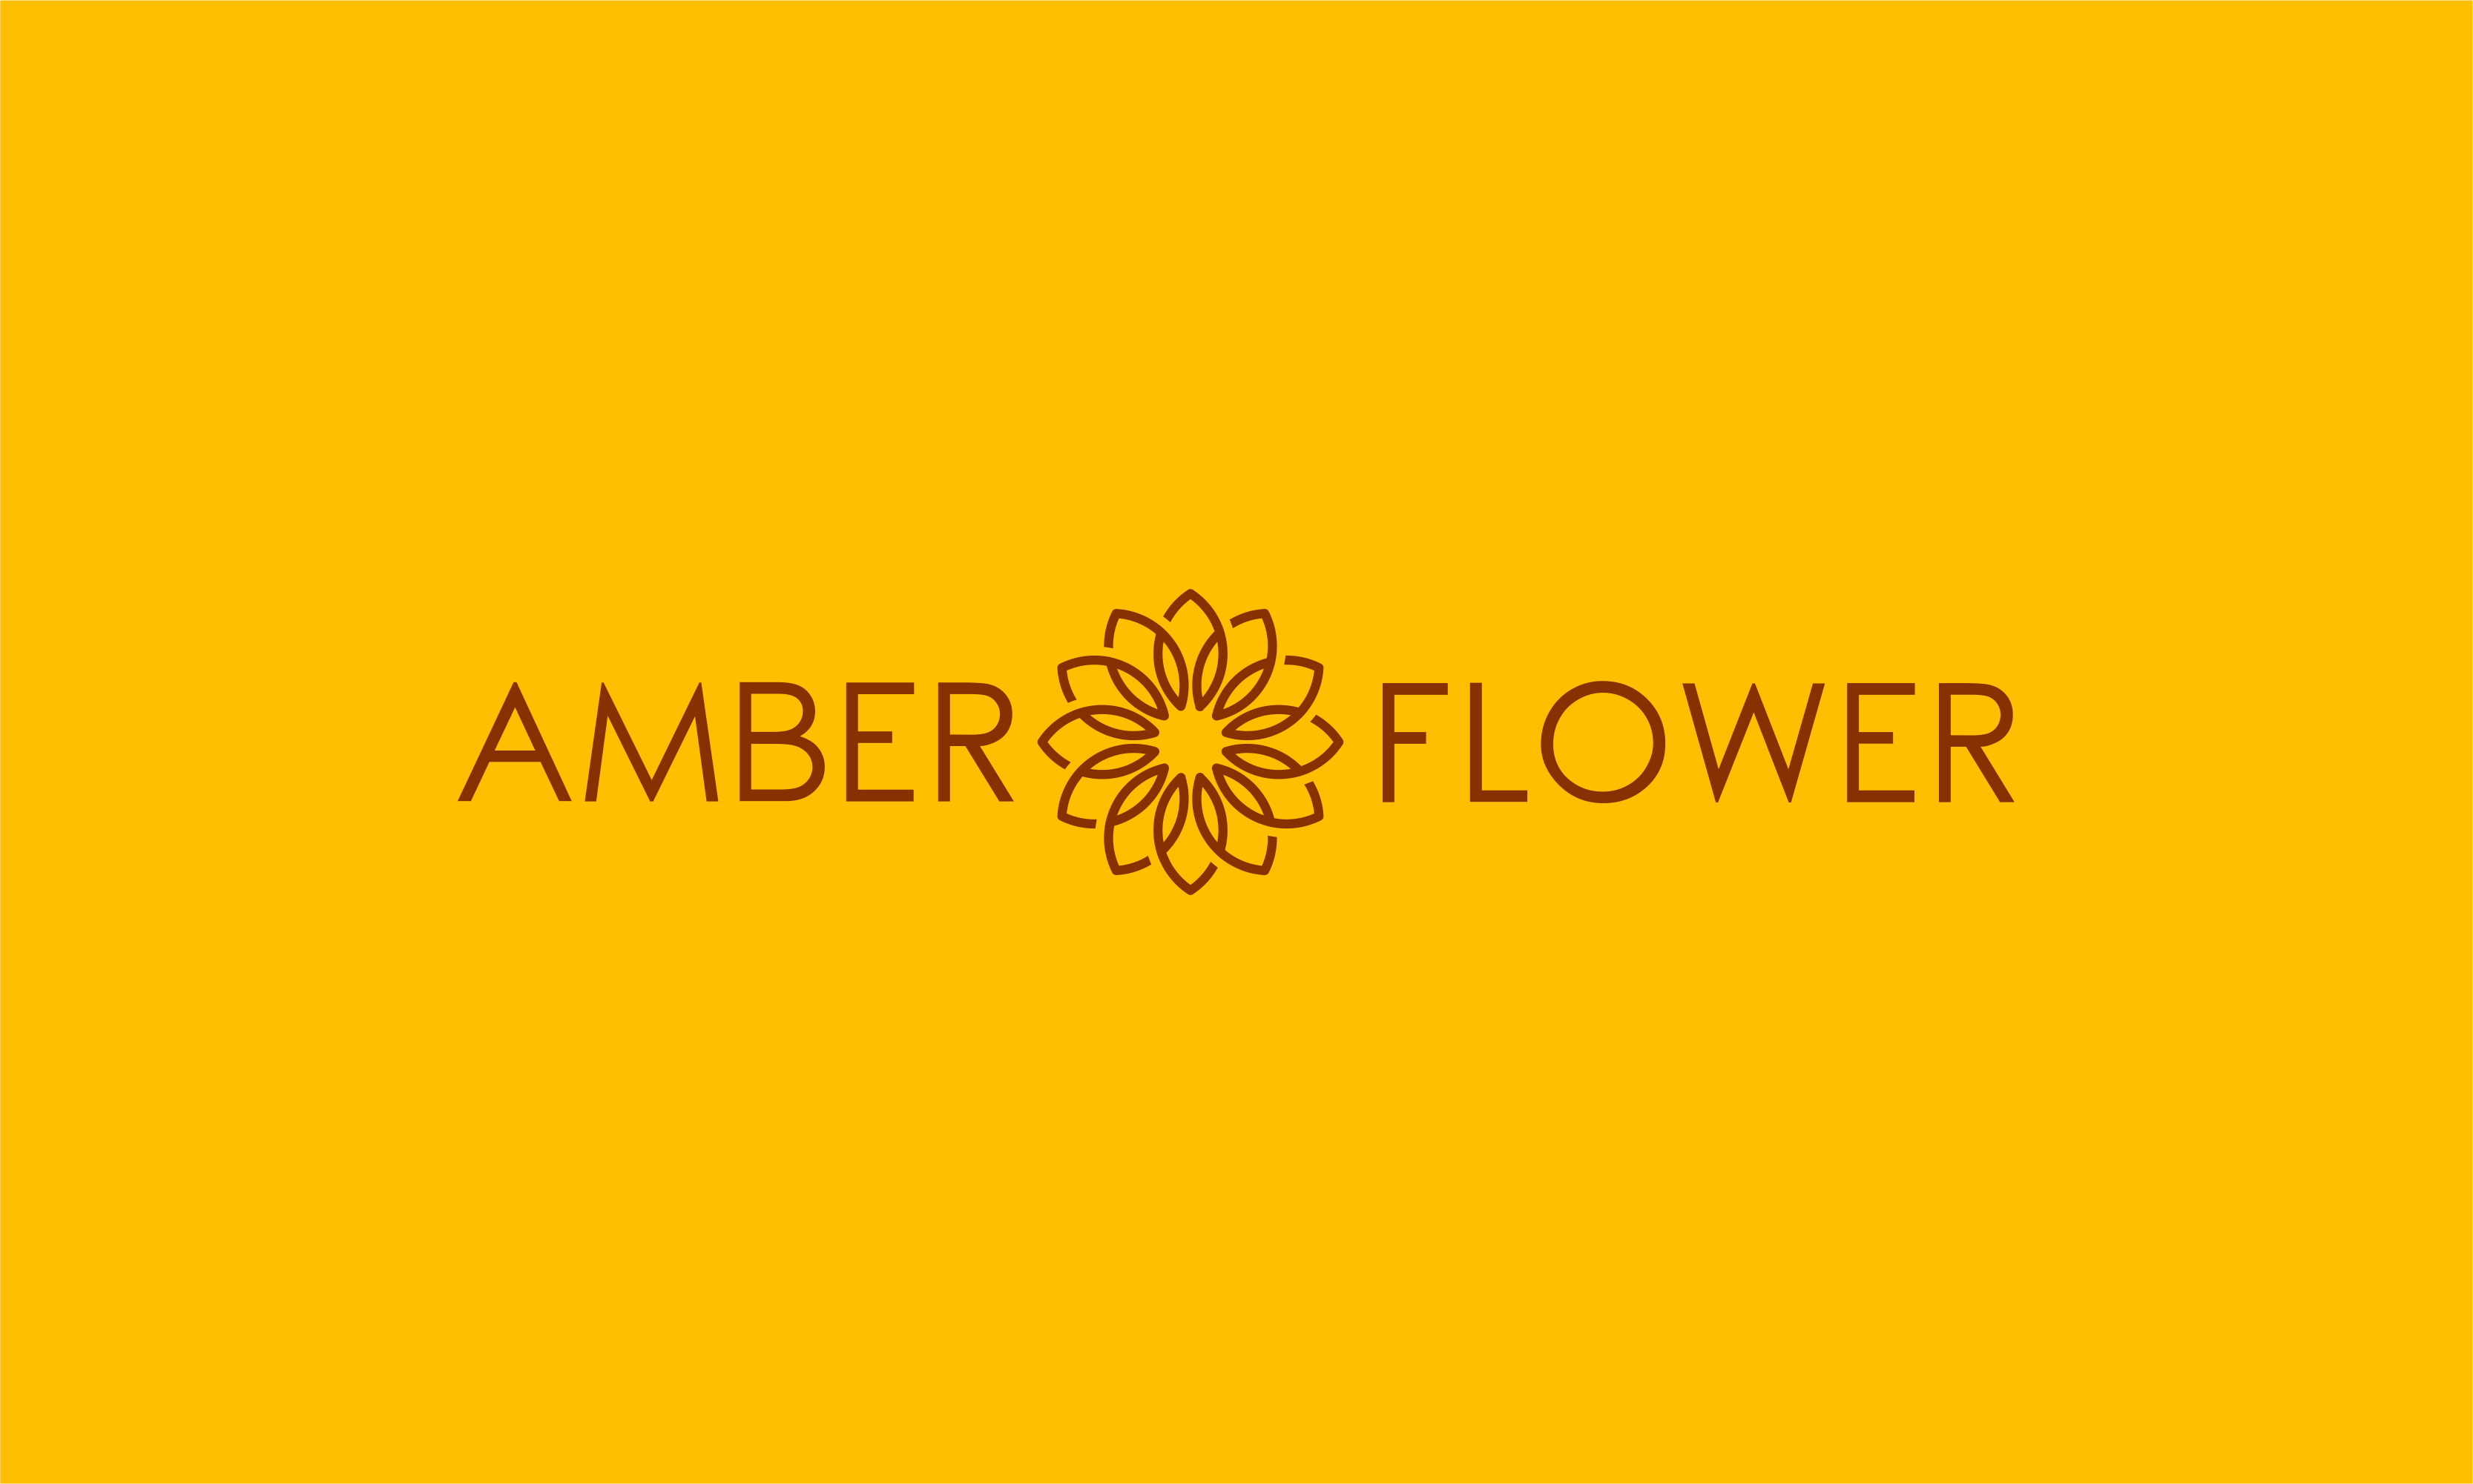 Amberflower